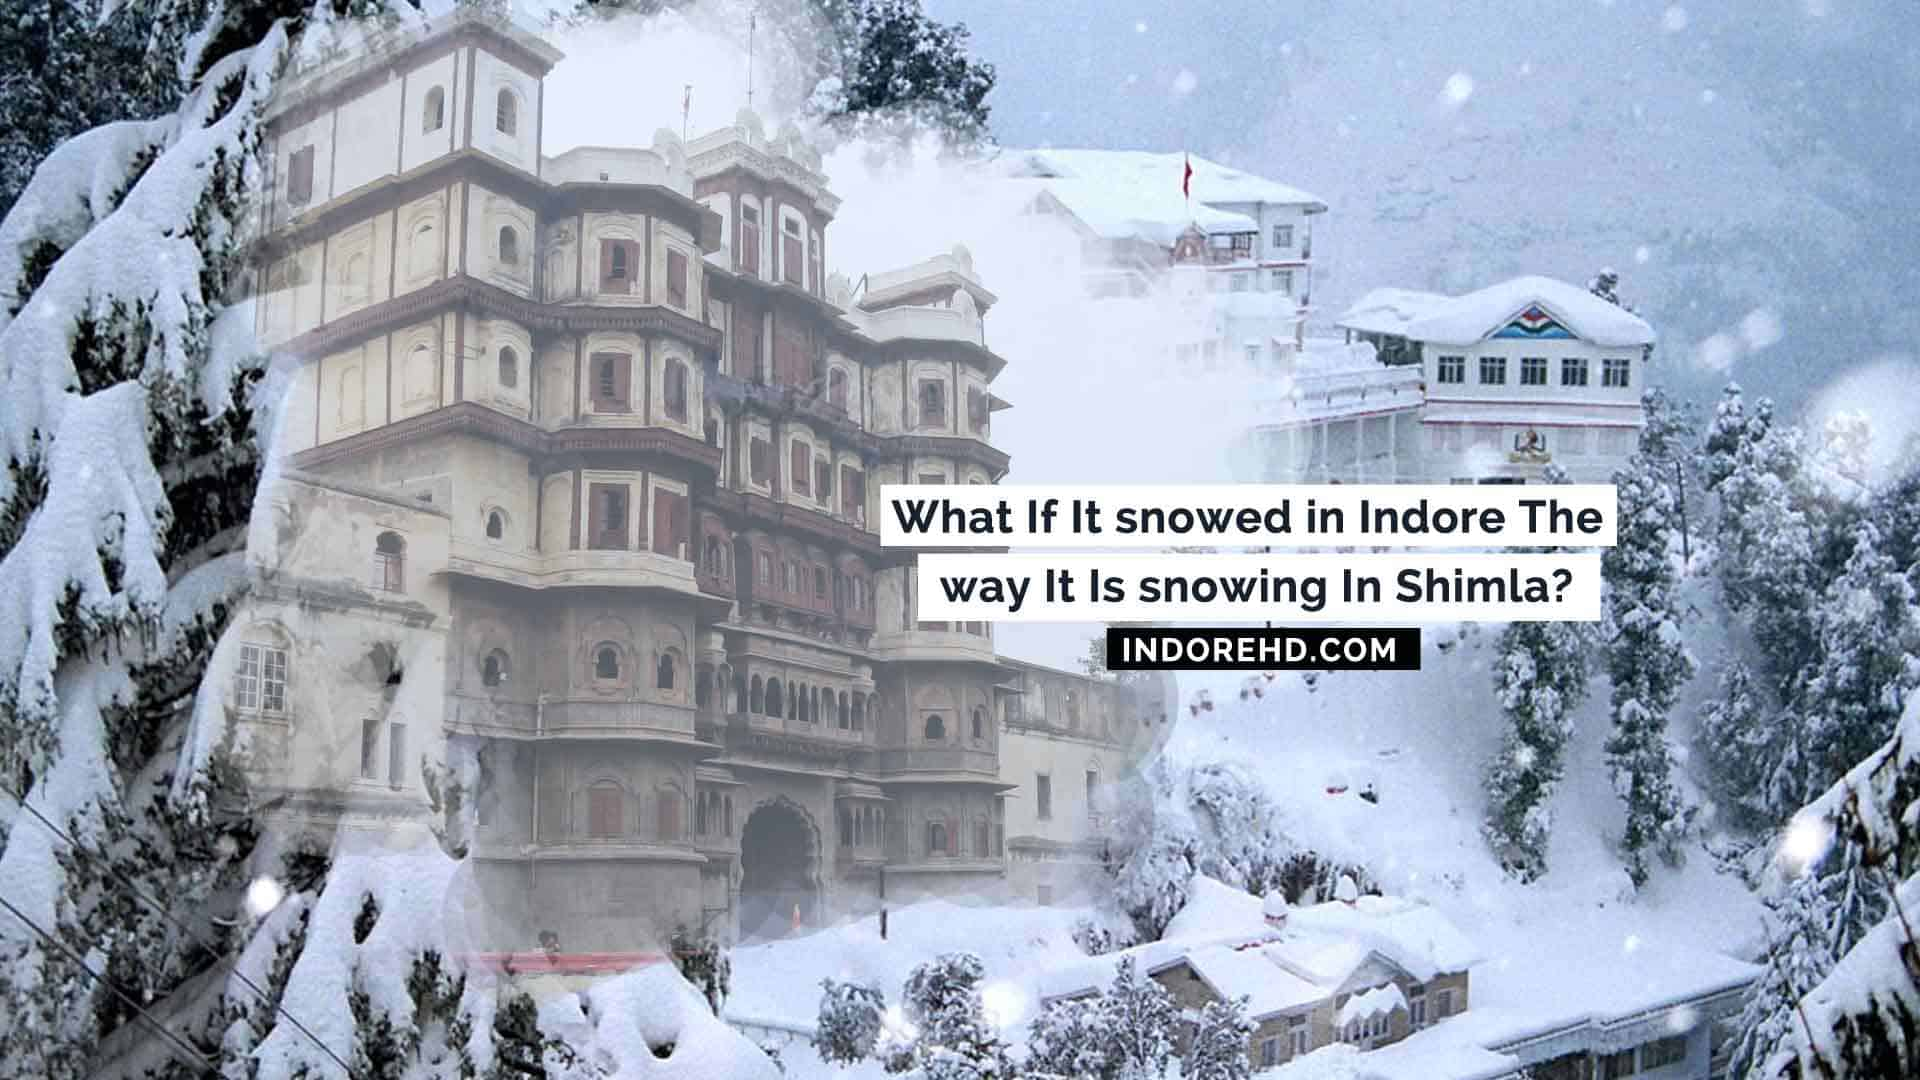 If-snowafalls-in-indore-like-shimla-IndoreHD